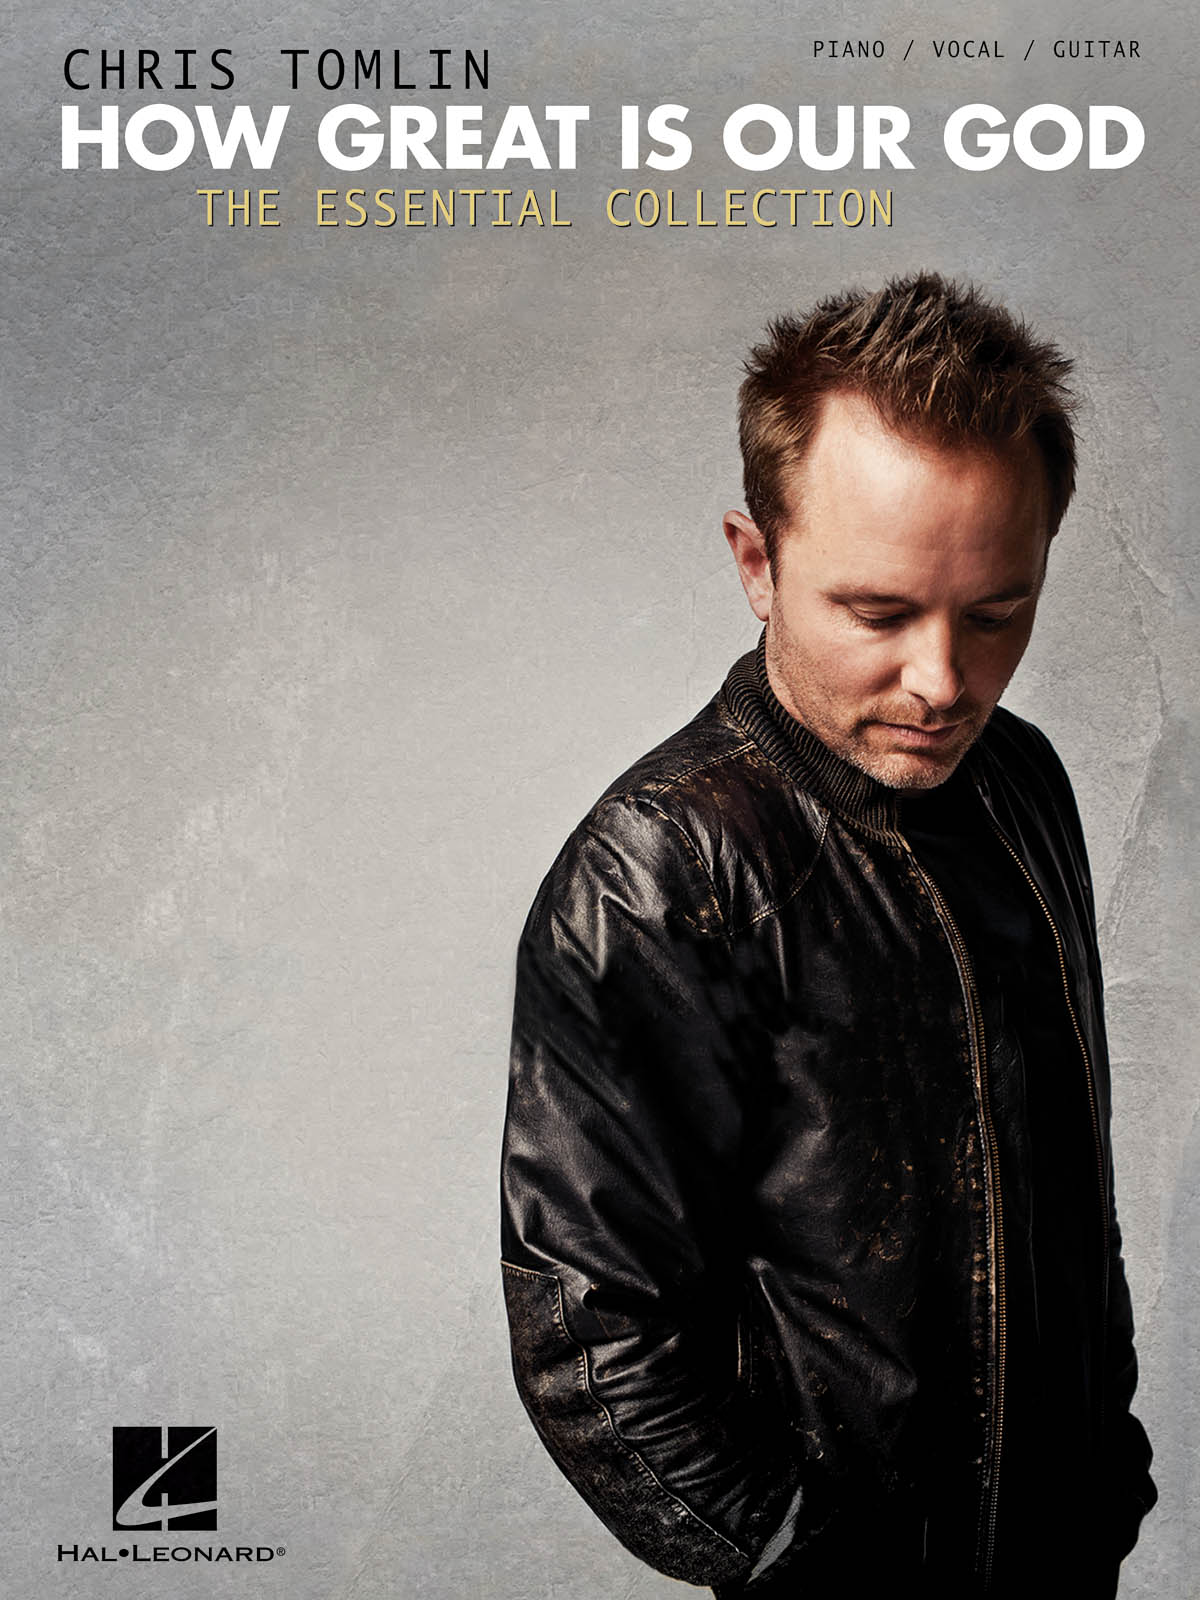 Chris Tomlin: Chris Tomlin: How Great Is Our God: Piano  Vocal  Guitar: Artist